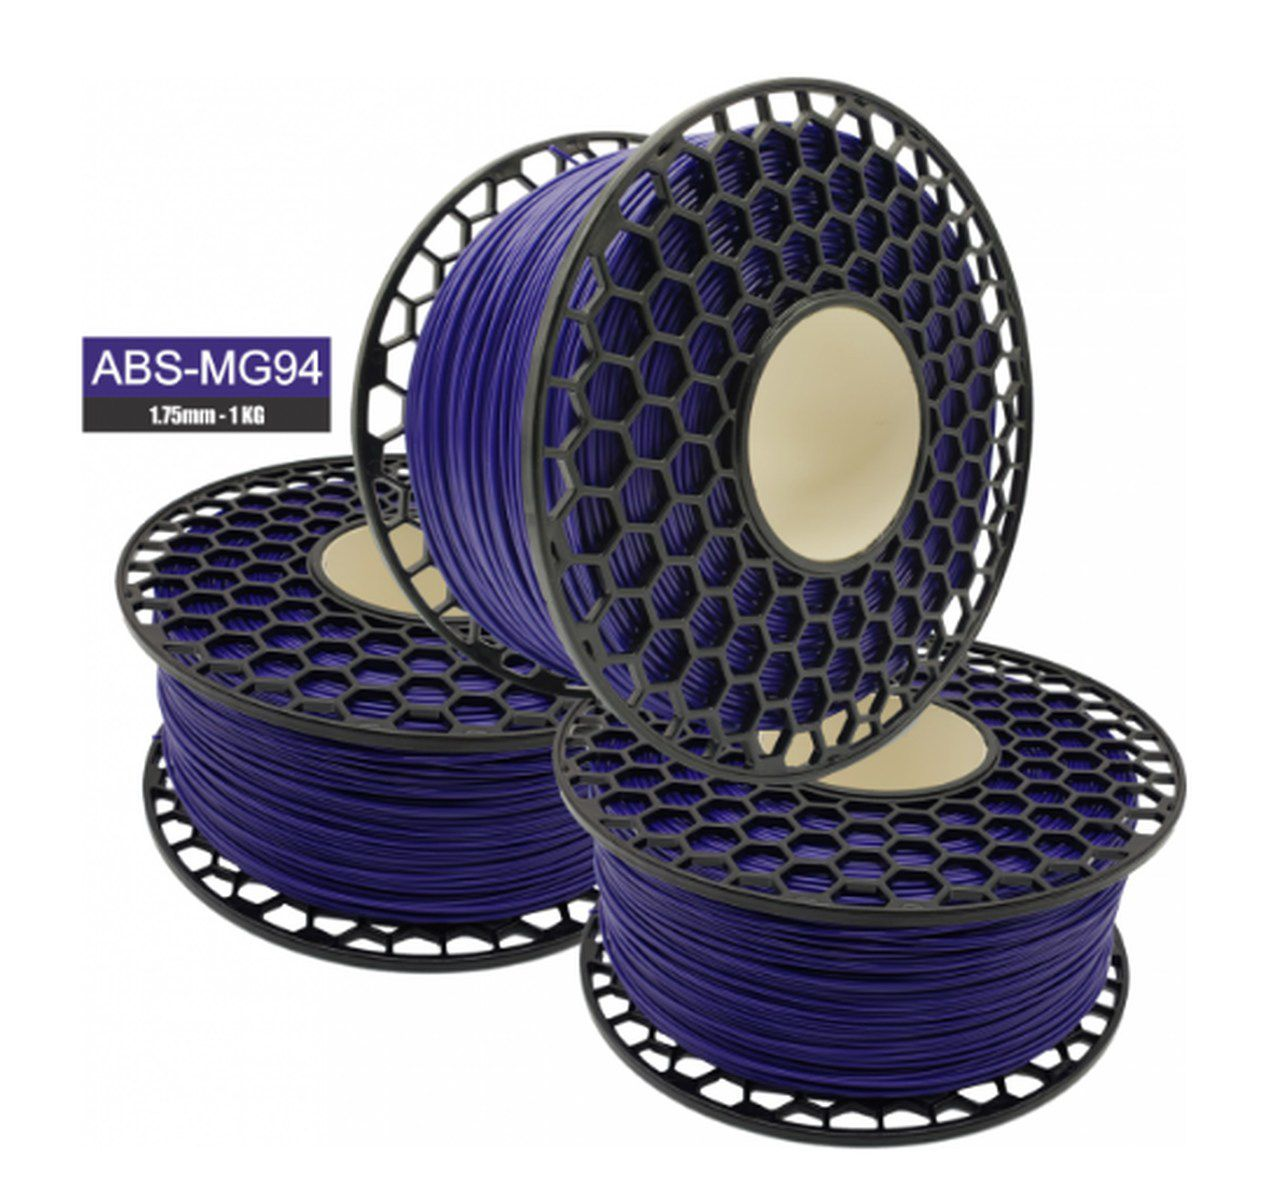 Filamento ABS - Violeta - Premium MG94 - National 3D - 1.75mm - 1kg